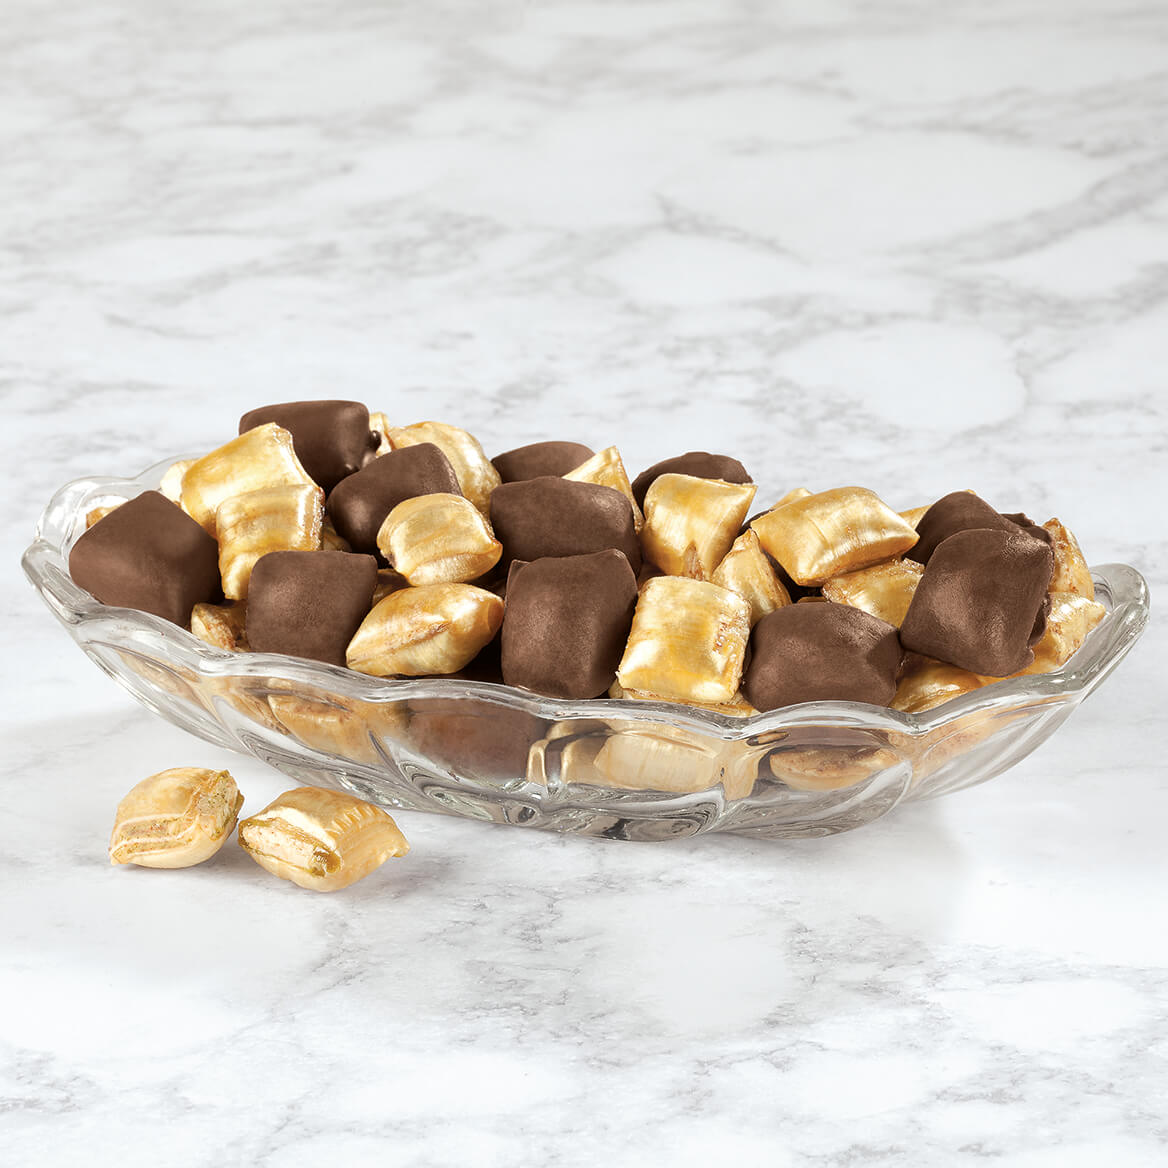 Chocolate Covered Peanut Butter Pillows, 10 oz.-368362